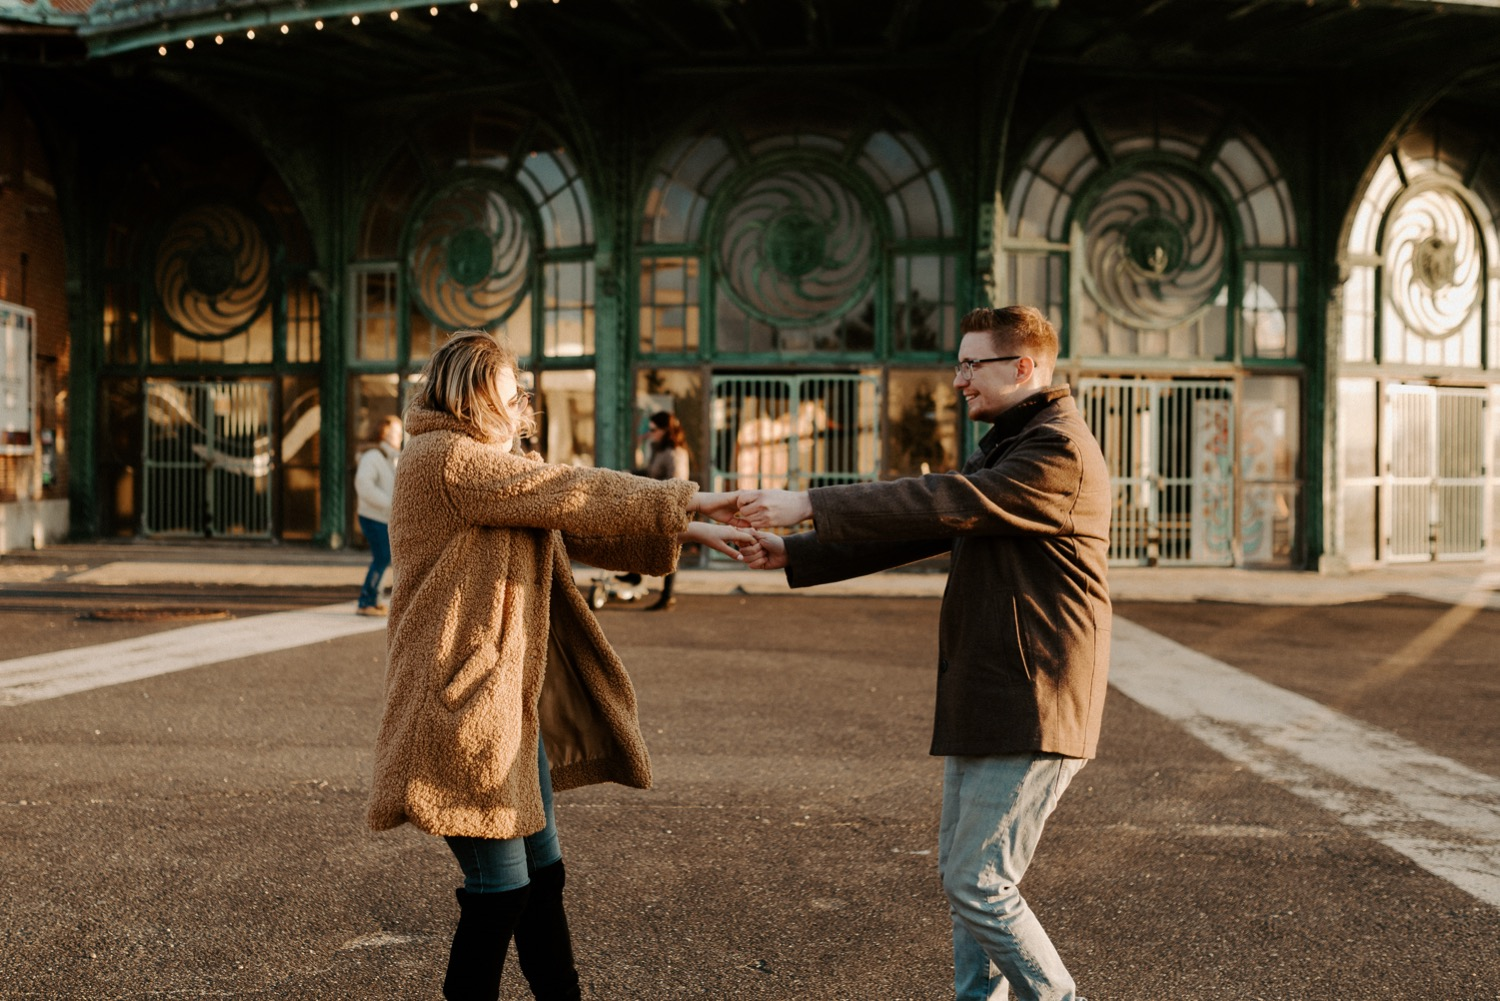 Asbury Park Engagement Photos Winter Beach Engagement Session New Jersey Wedding Photographer Anais Possamai Photography 020